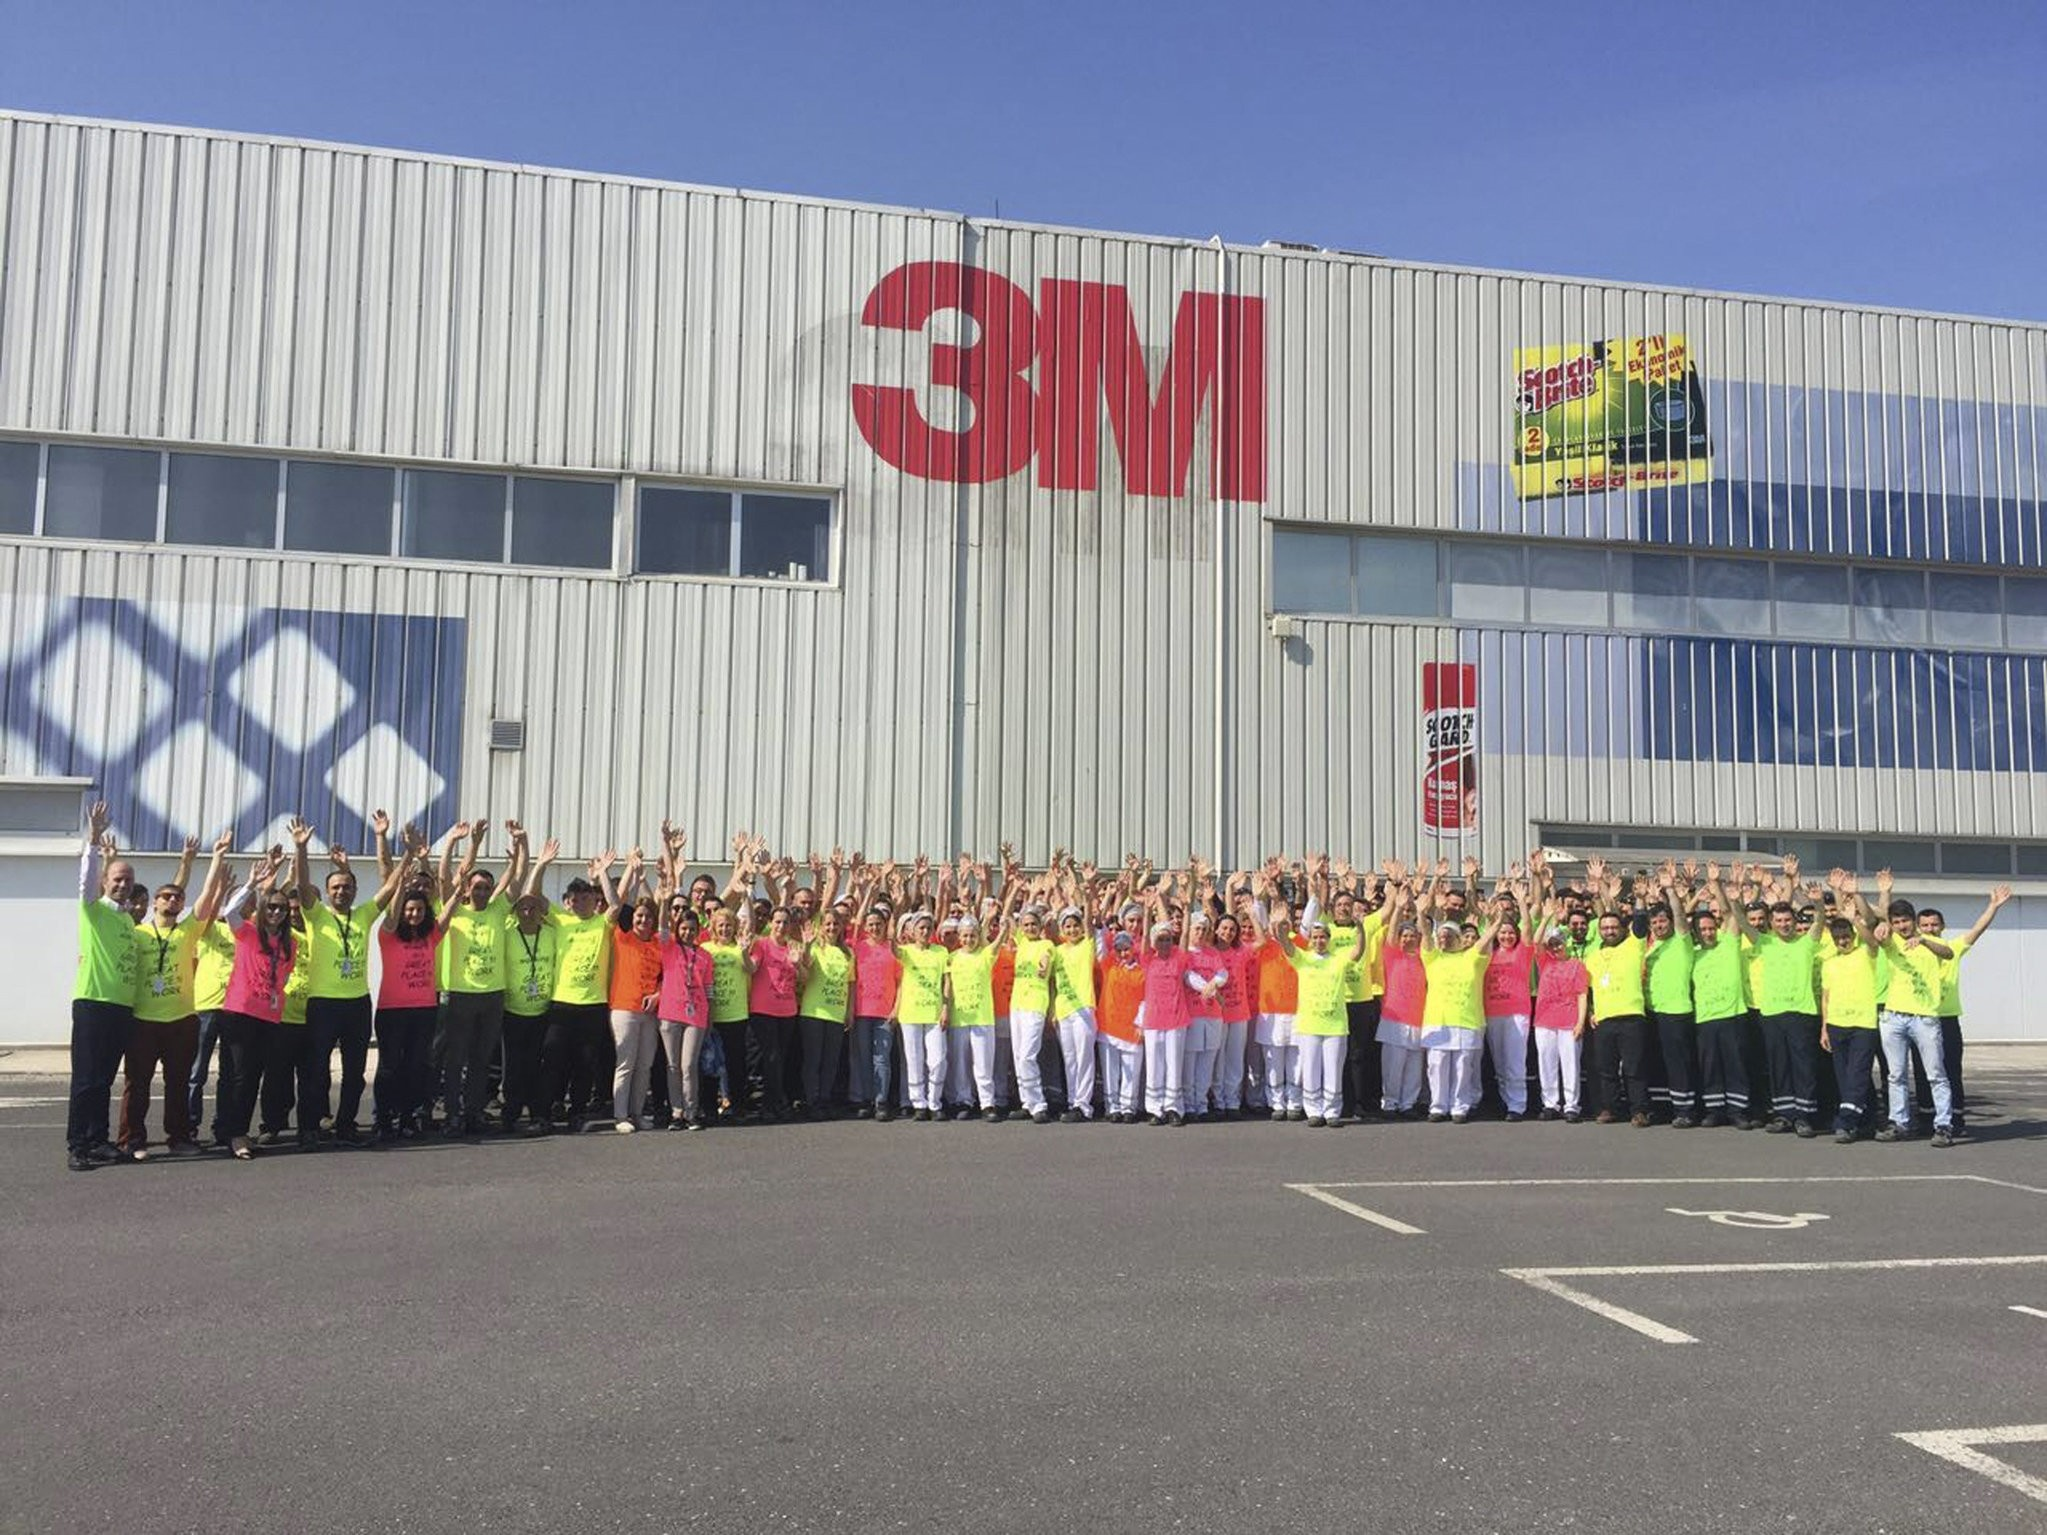 3M Turkey was awarded a u201cGreat Place to Worku201d in the category of companies with 500 to 2,000 employees in Turkey for 2018.